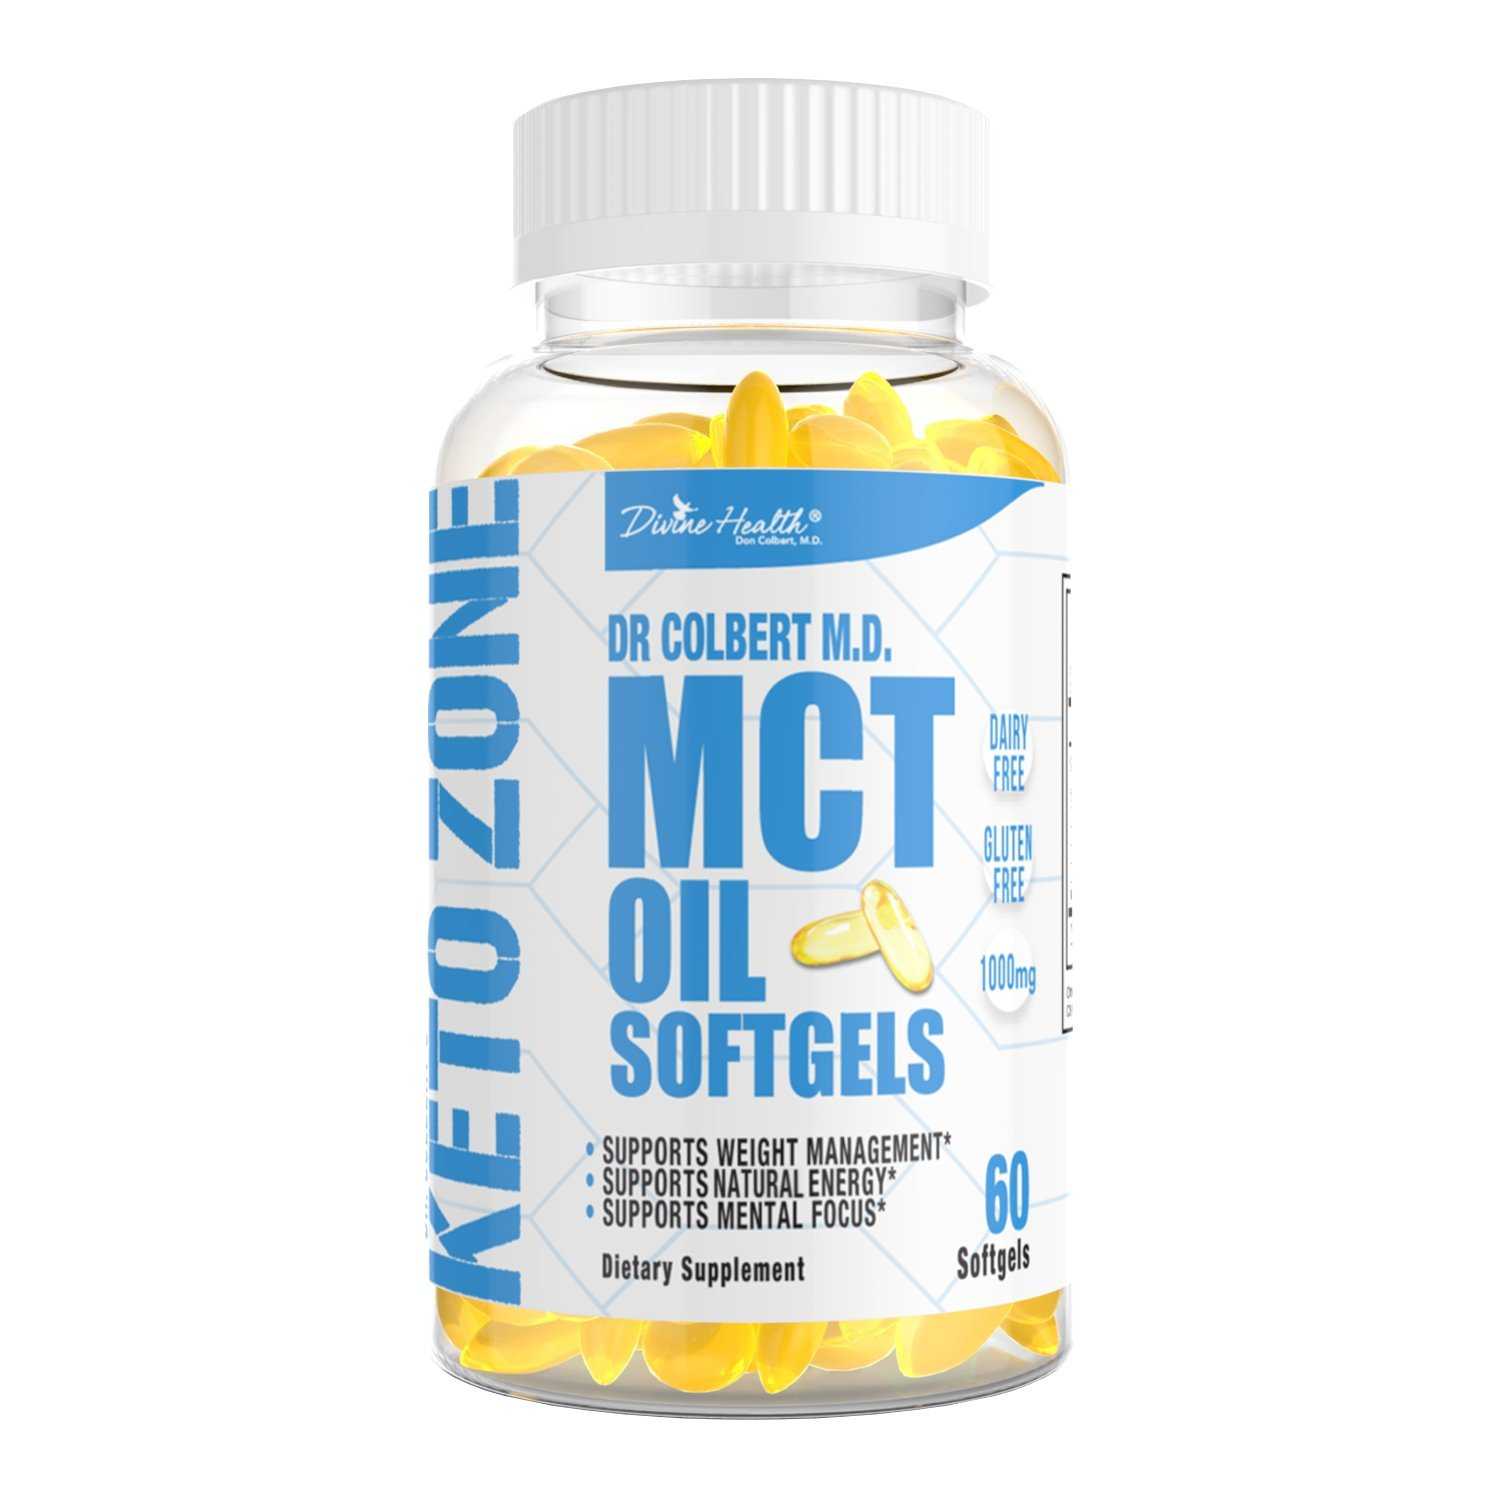 Amazon.com: Dr.Colberts Keto Zone All Natural MCT Oil Softgels 1000mg from Organic Coconuts - 60 Softgels - Ketogenic Approved: Health & Personal Care